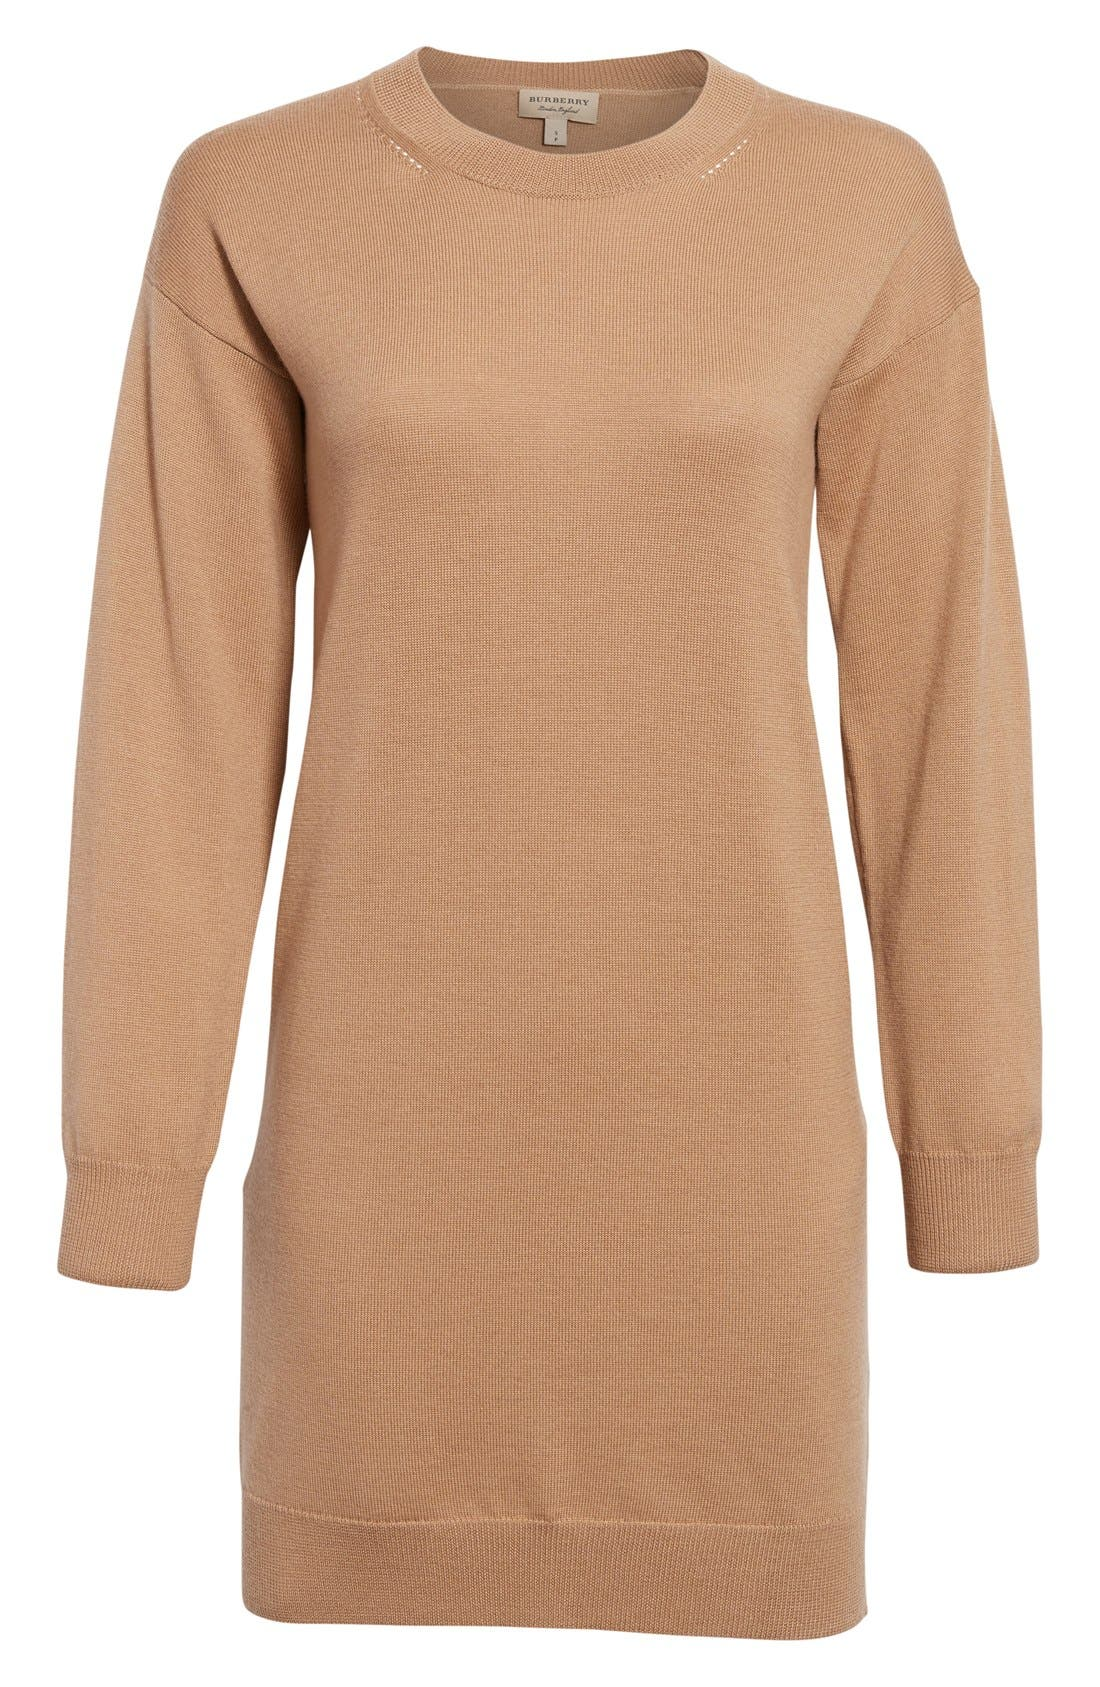 BURBERRY,                             Alewater Elbow Patch Merino Wool Dress,                             Alternate thumbnail 11, color,                             CAMEL